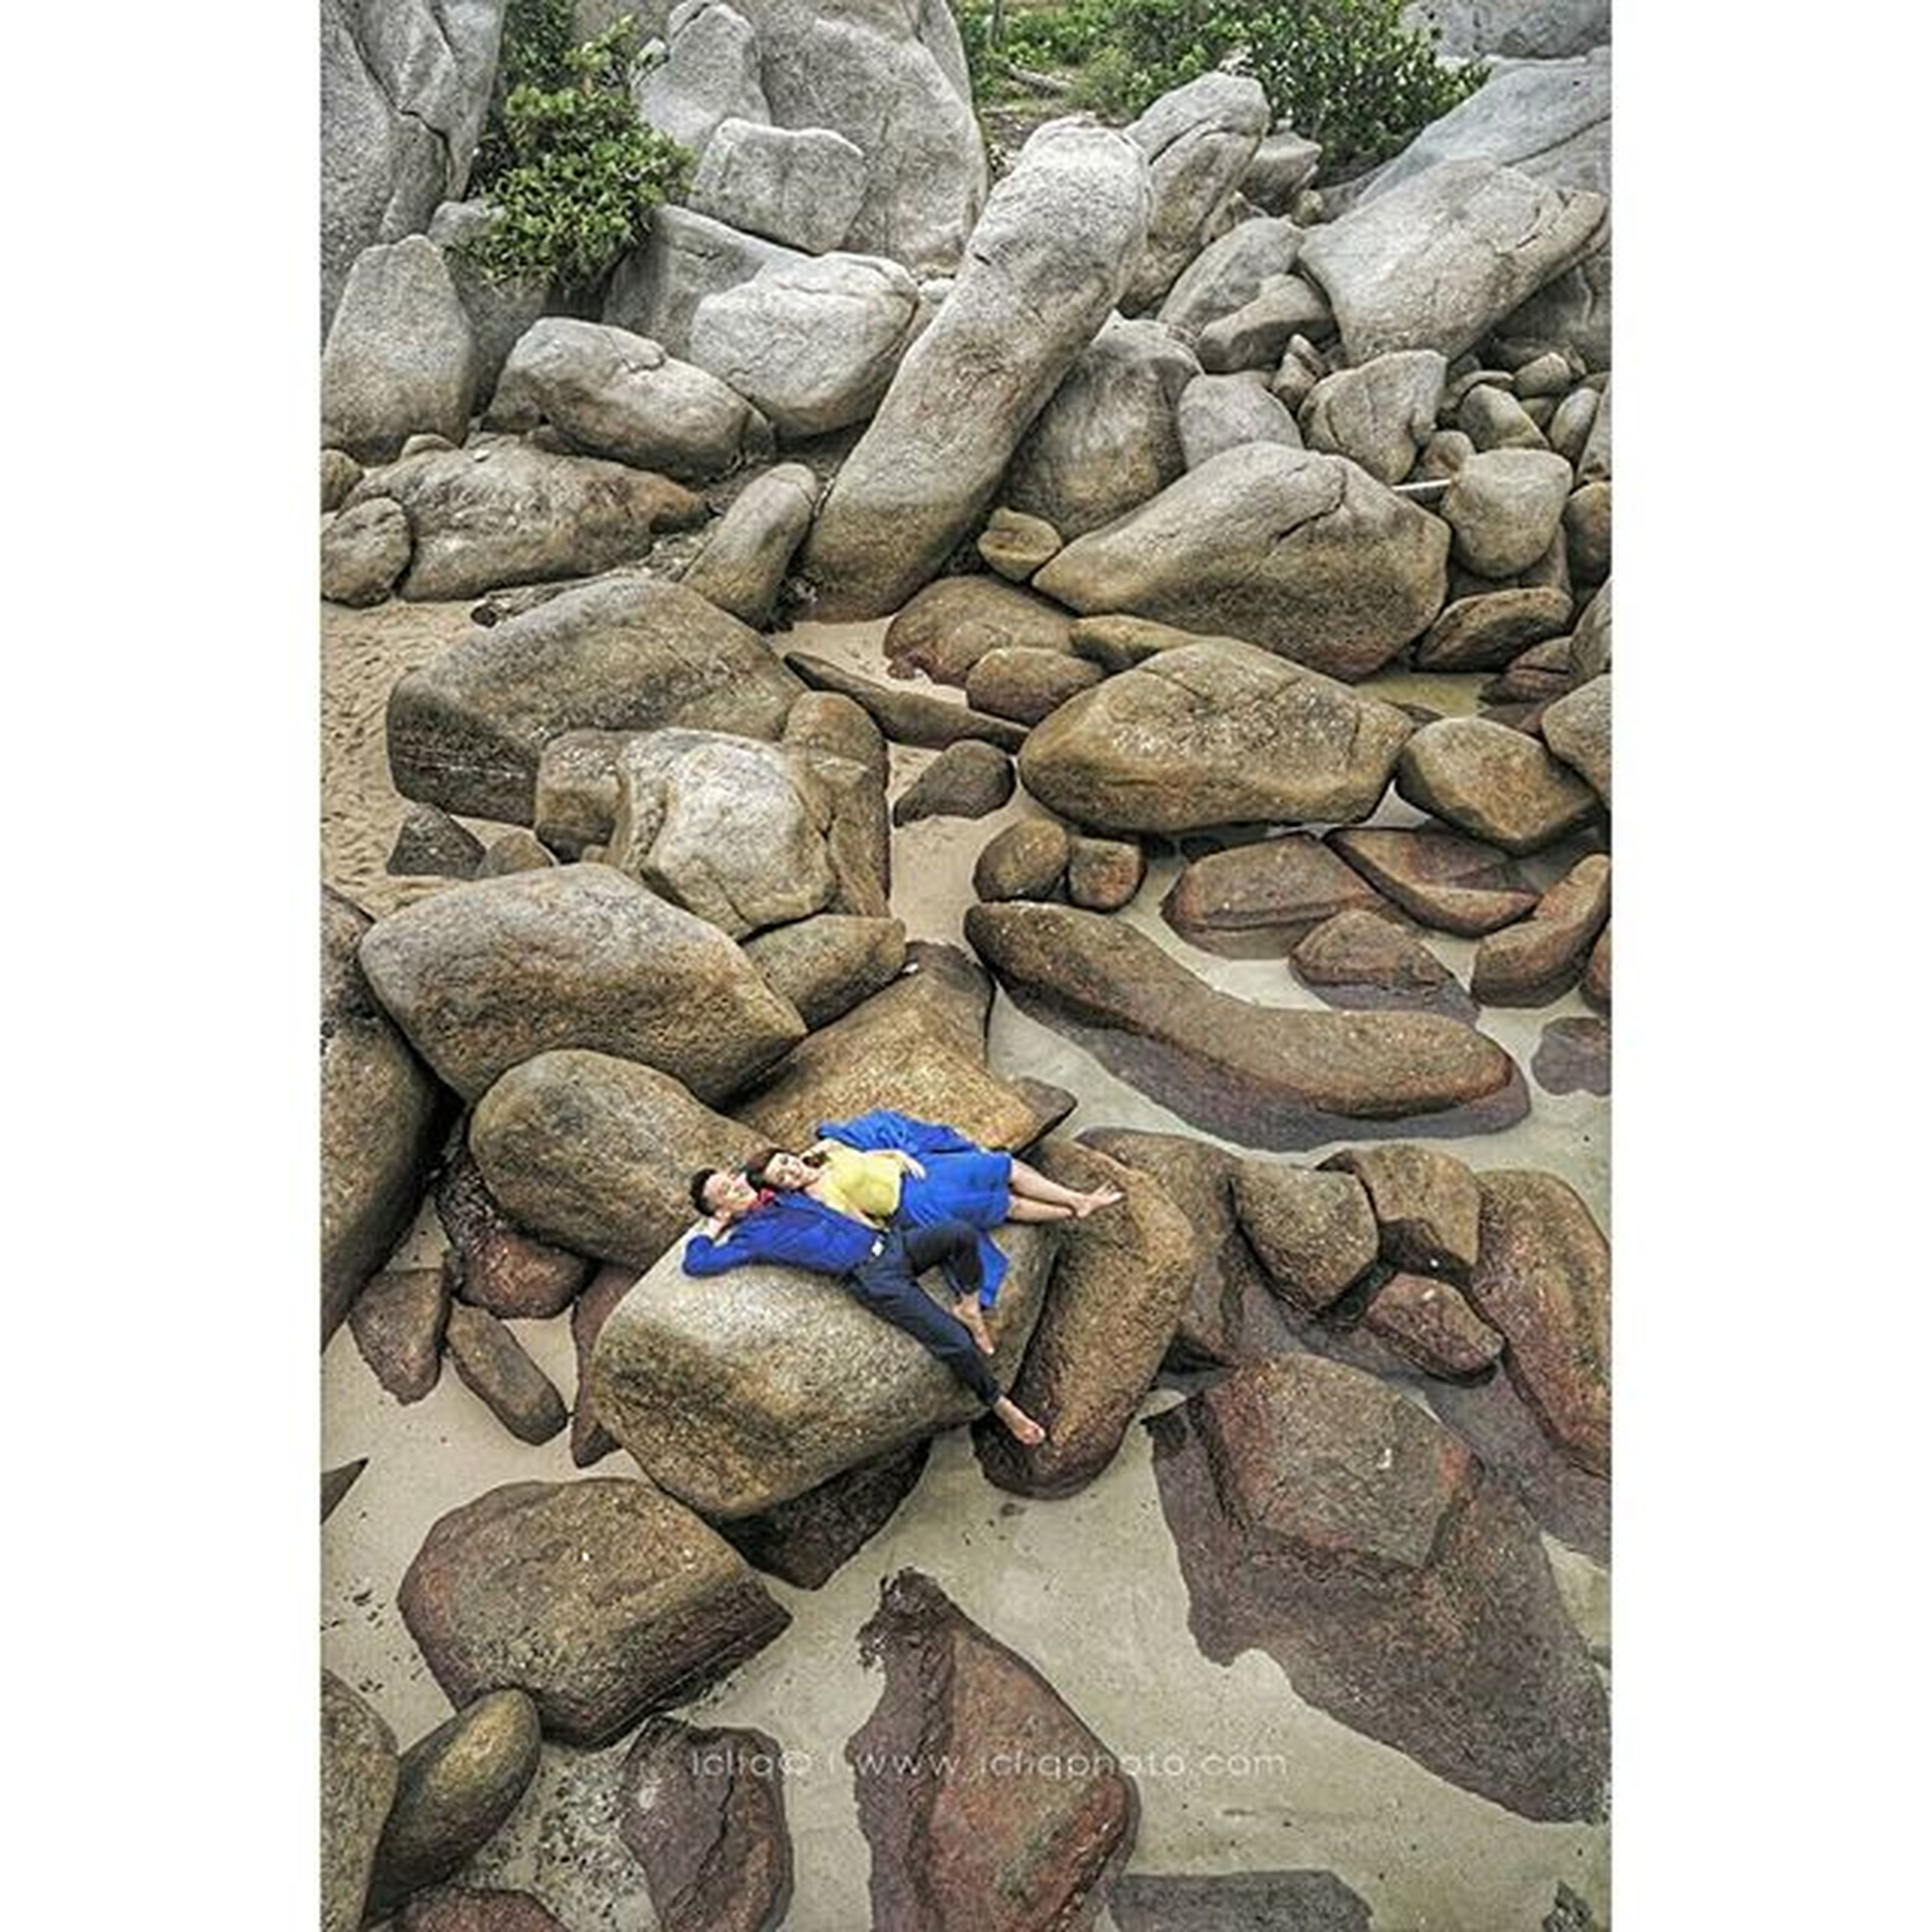 transfer print, auto post production filter, rock - object, stone - object, high angle view, stone, abundance, outdoors, day, stack, large group of objects, textured, sunlight, nature, pebble, rock, tranquility, no people, rock formation